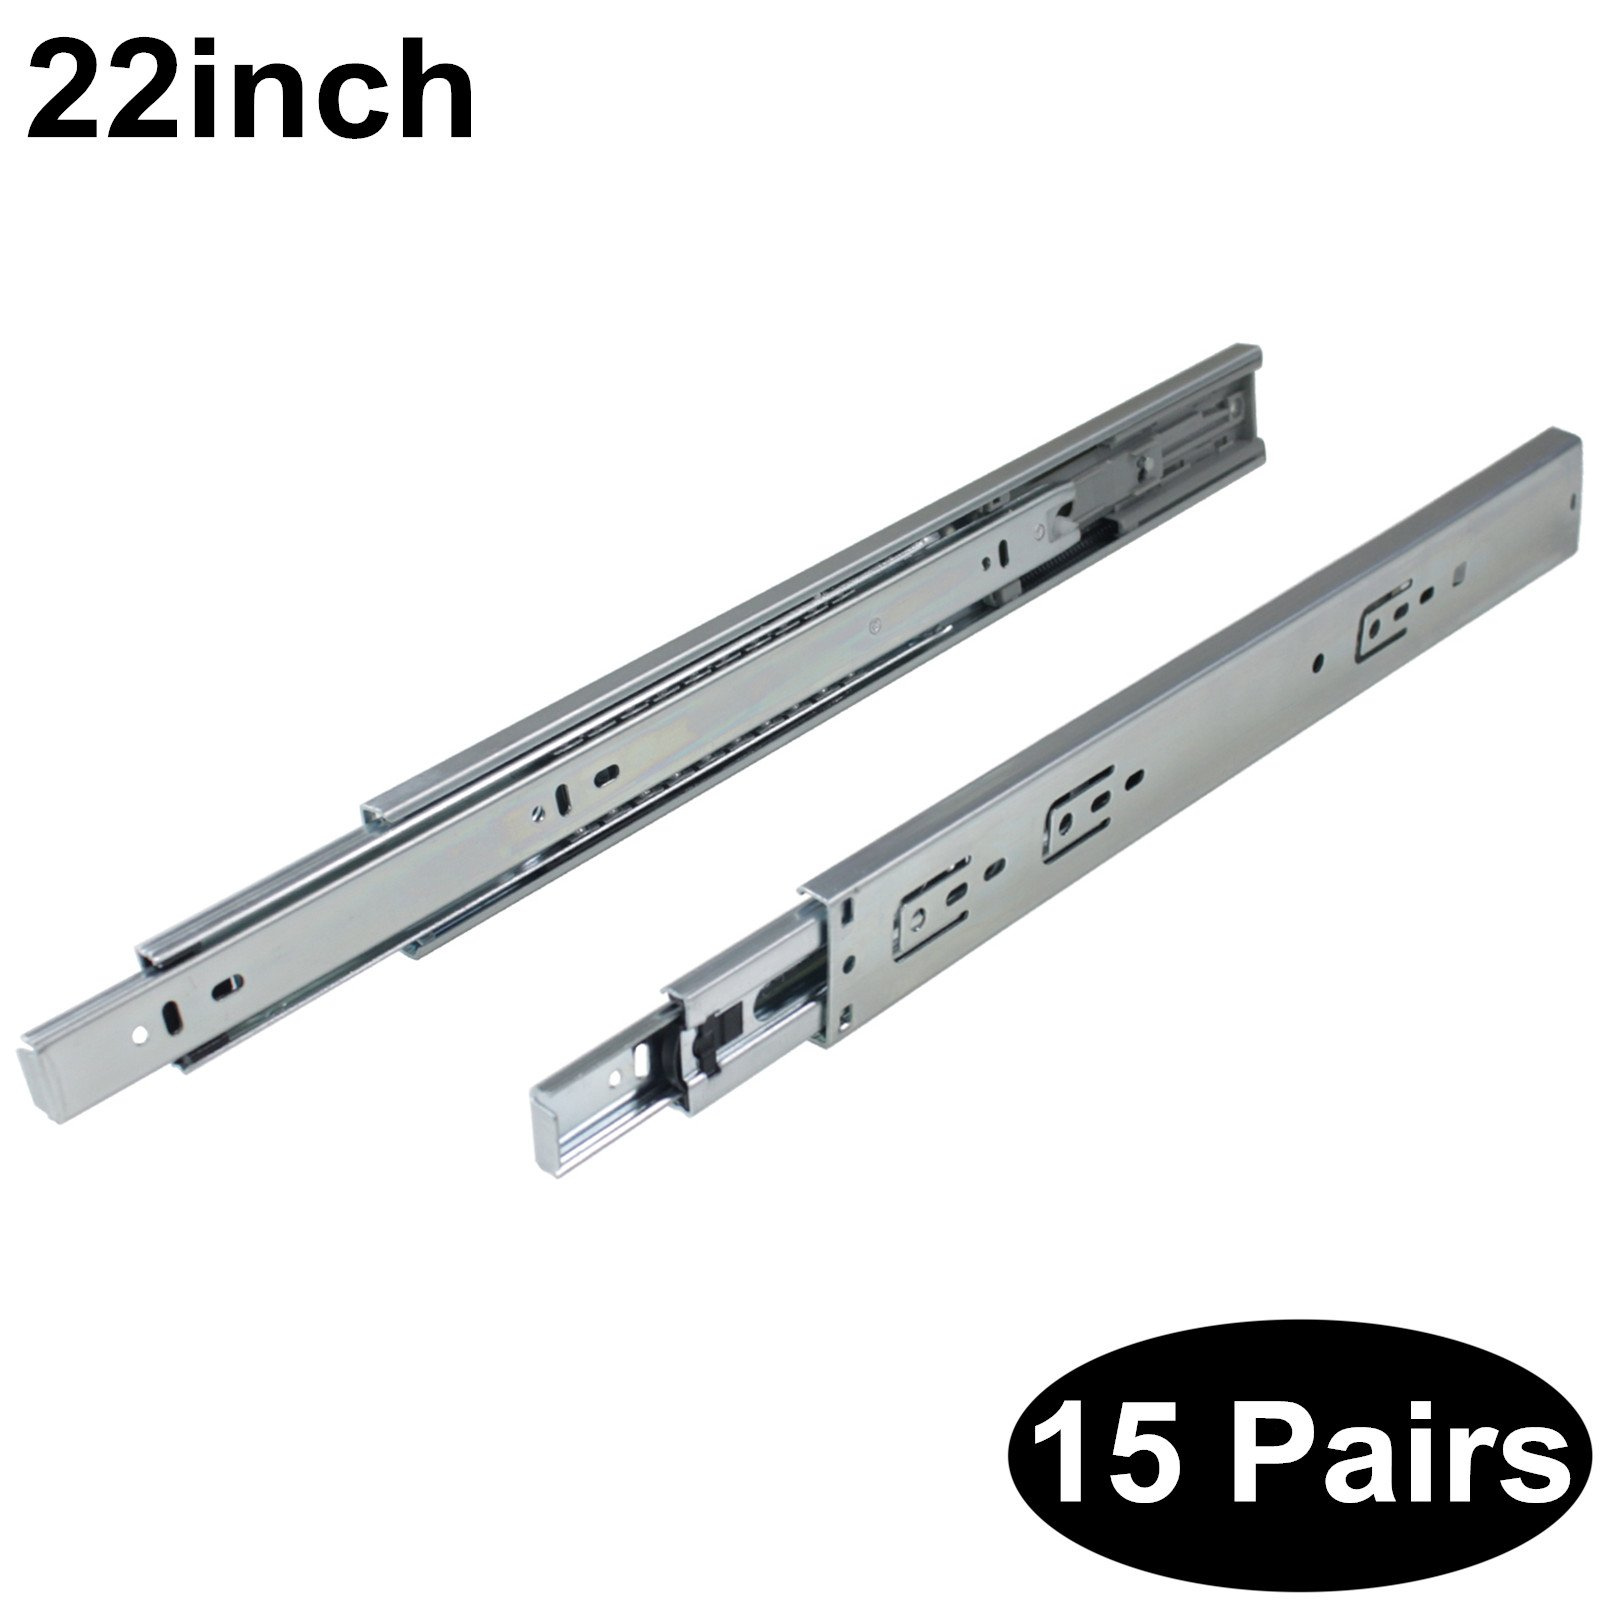 15 Pairs Soft Close DHH32-22 inch Full Extension Side Mount Drawer Slides 3-Folds Ball Bearing;100-pound Capacity